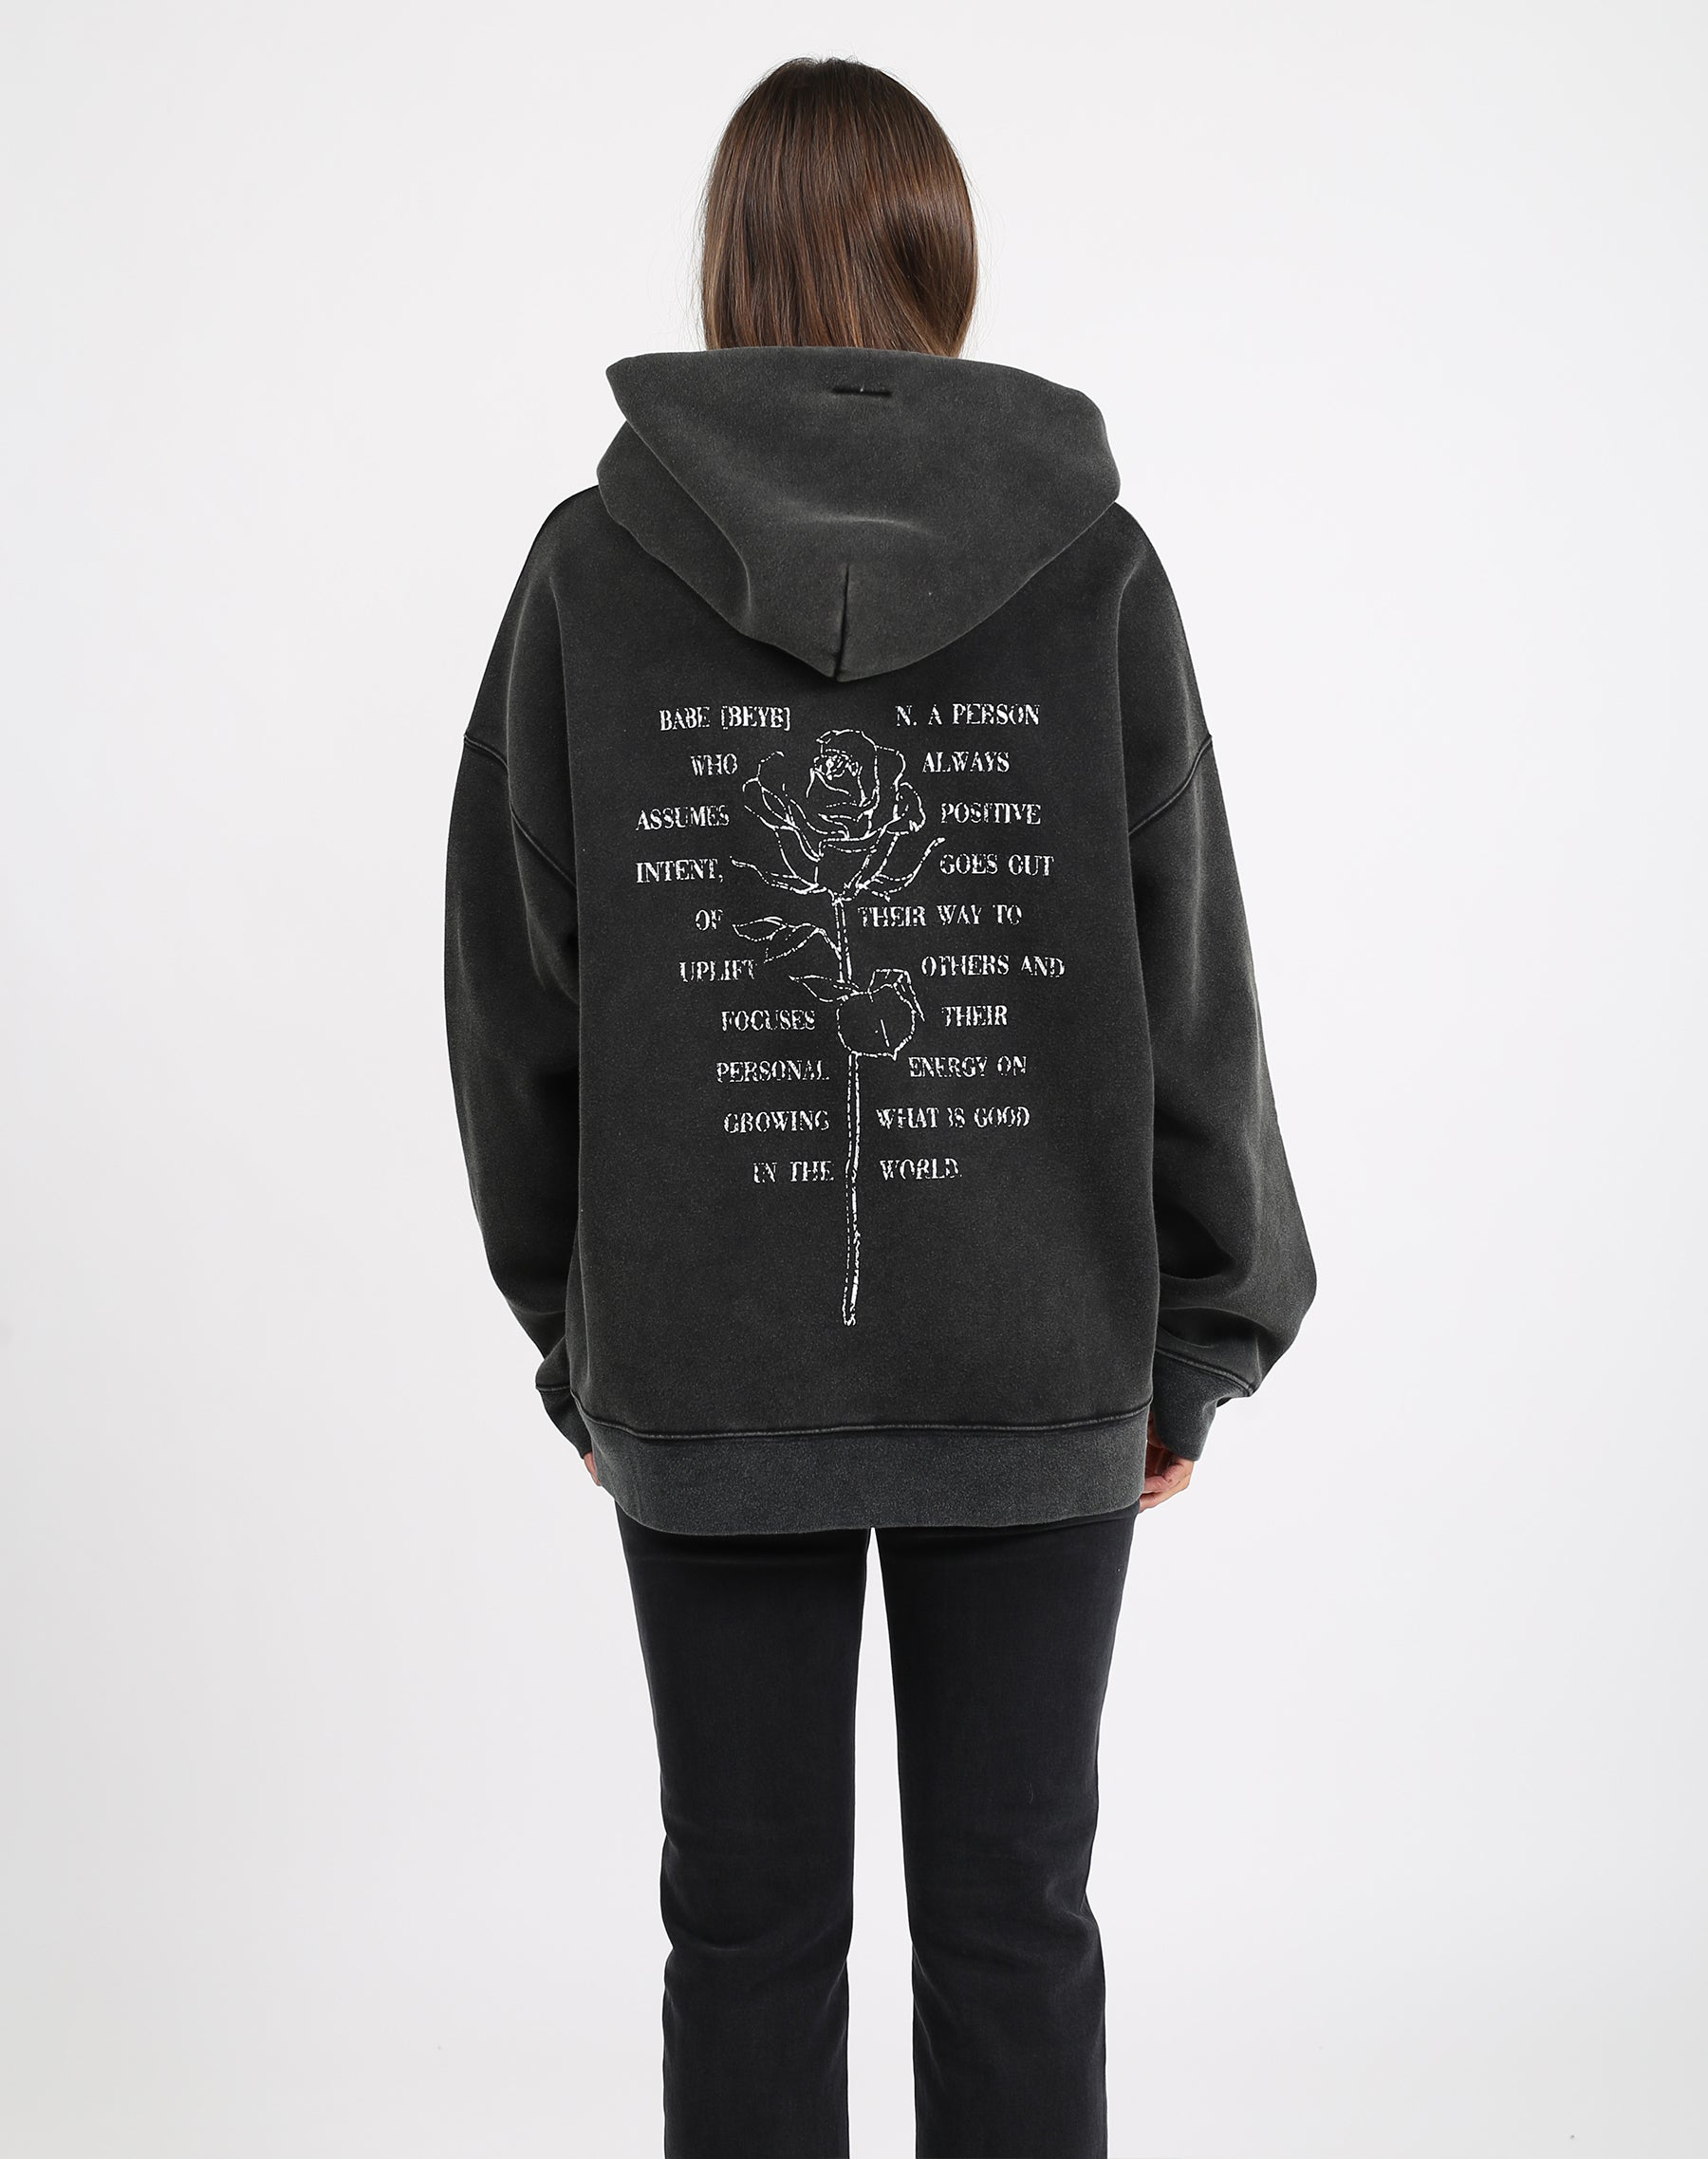 This is a photo of the back of a model wearing the babes club definition big sister hoodie in acid wash black by brunette the label.